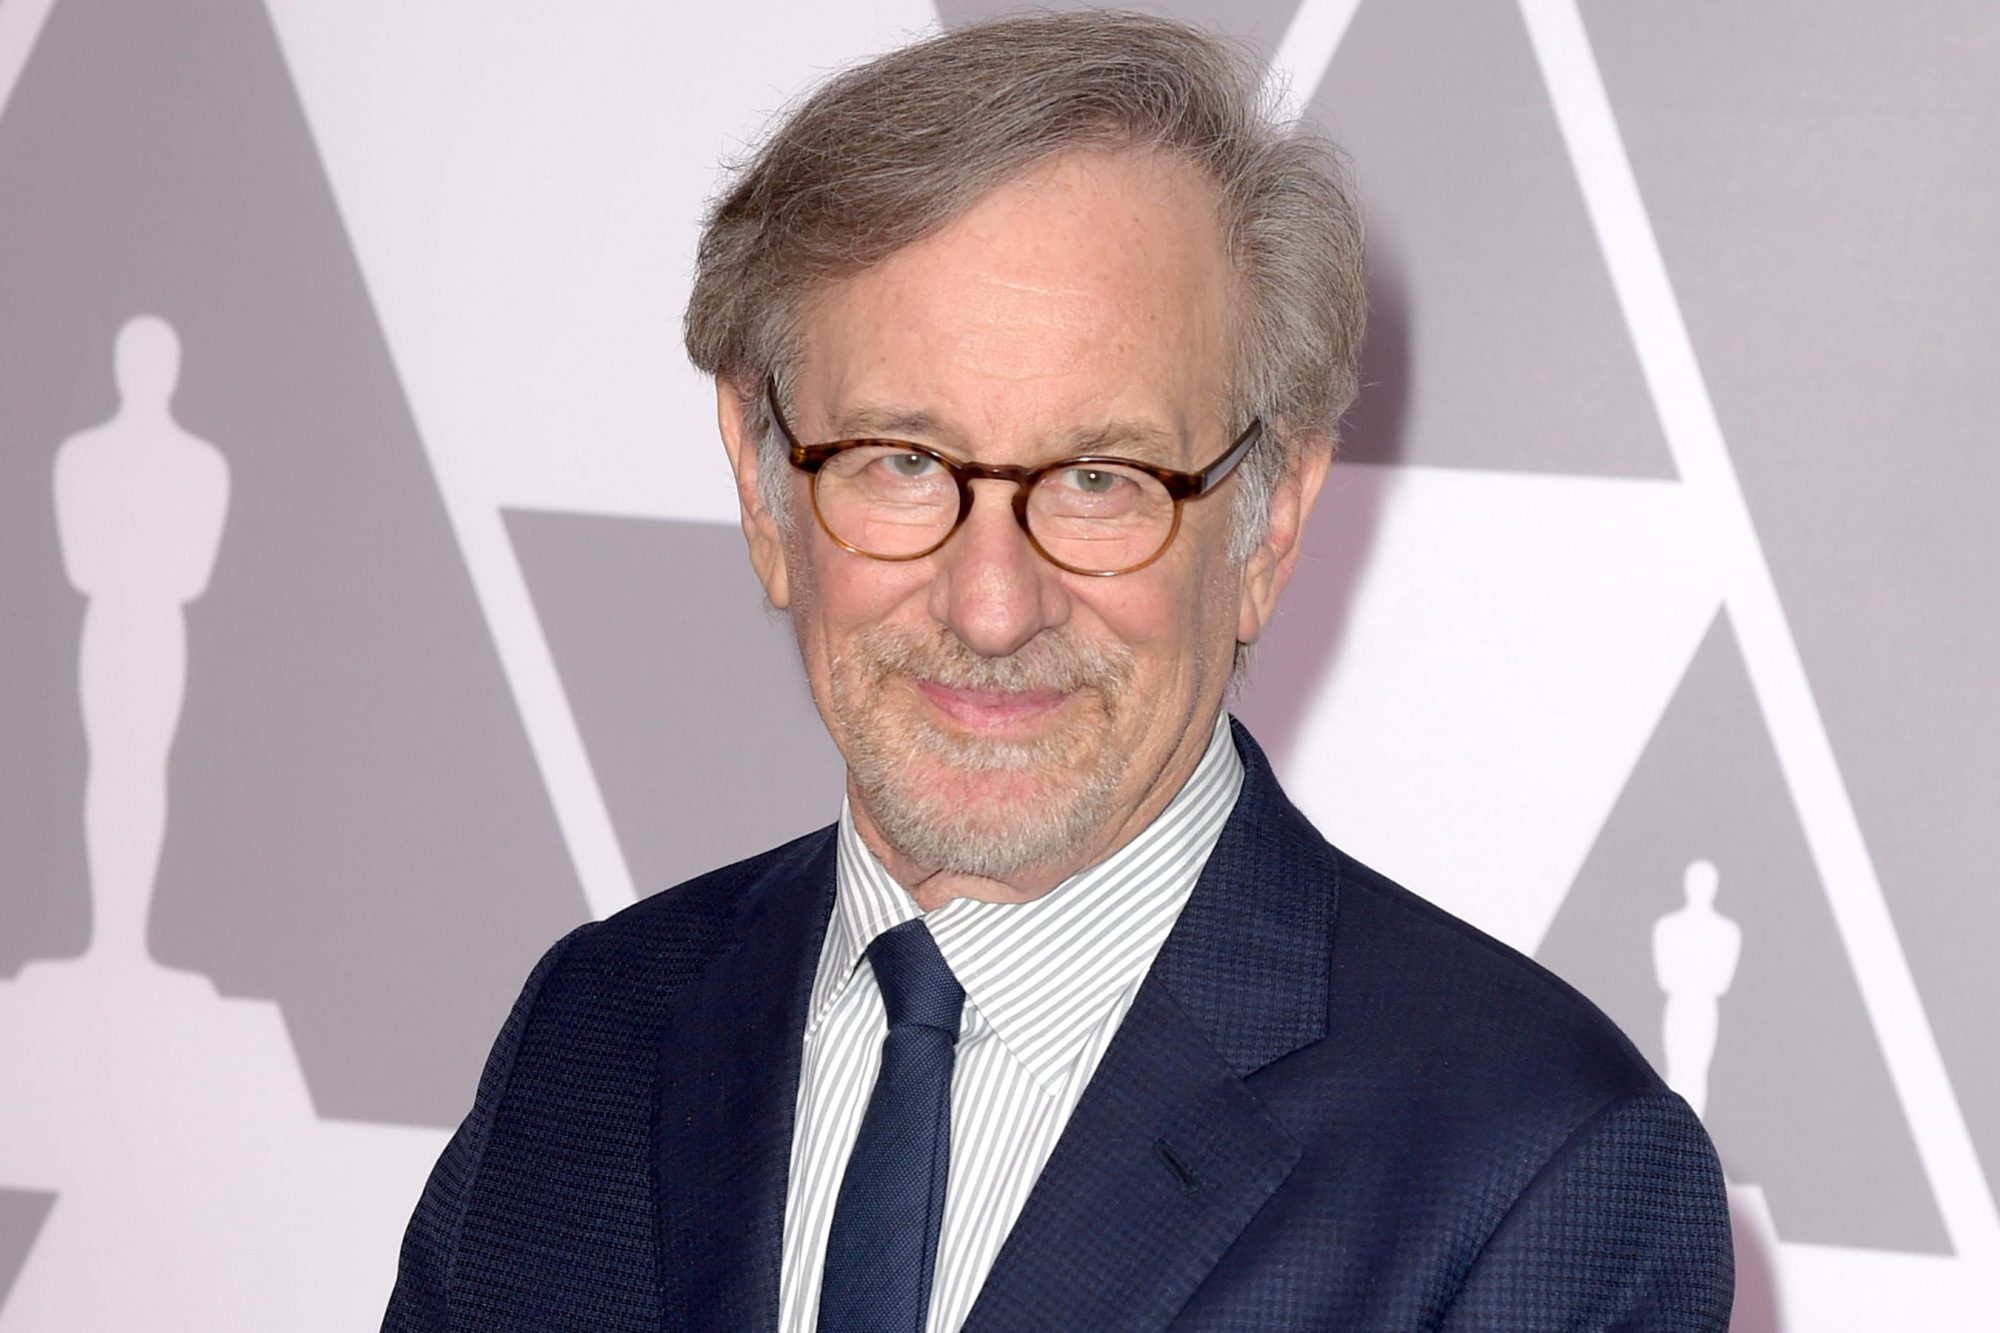 Star Wars Day Unearths Throwback Photo of Steven Spielberg Dressed as Darth Vader: See the Pic!